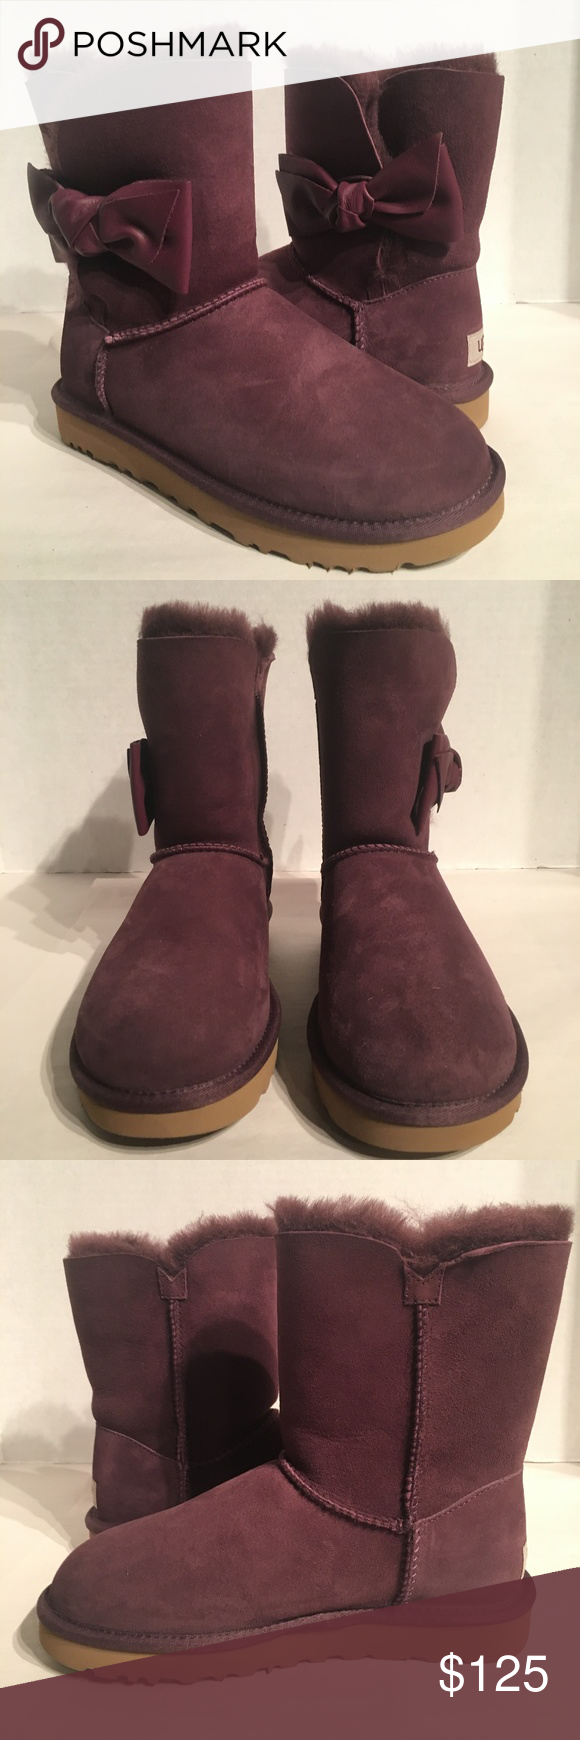 198410385db Ugg Women's Daelynn Port Leather Bow Boots New with box Buyers are ...